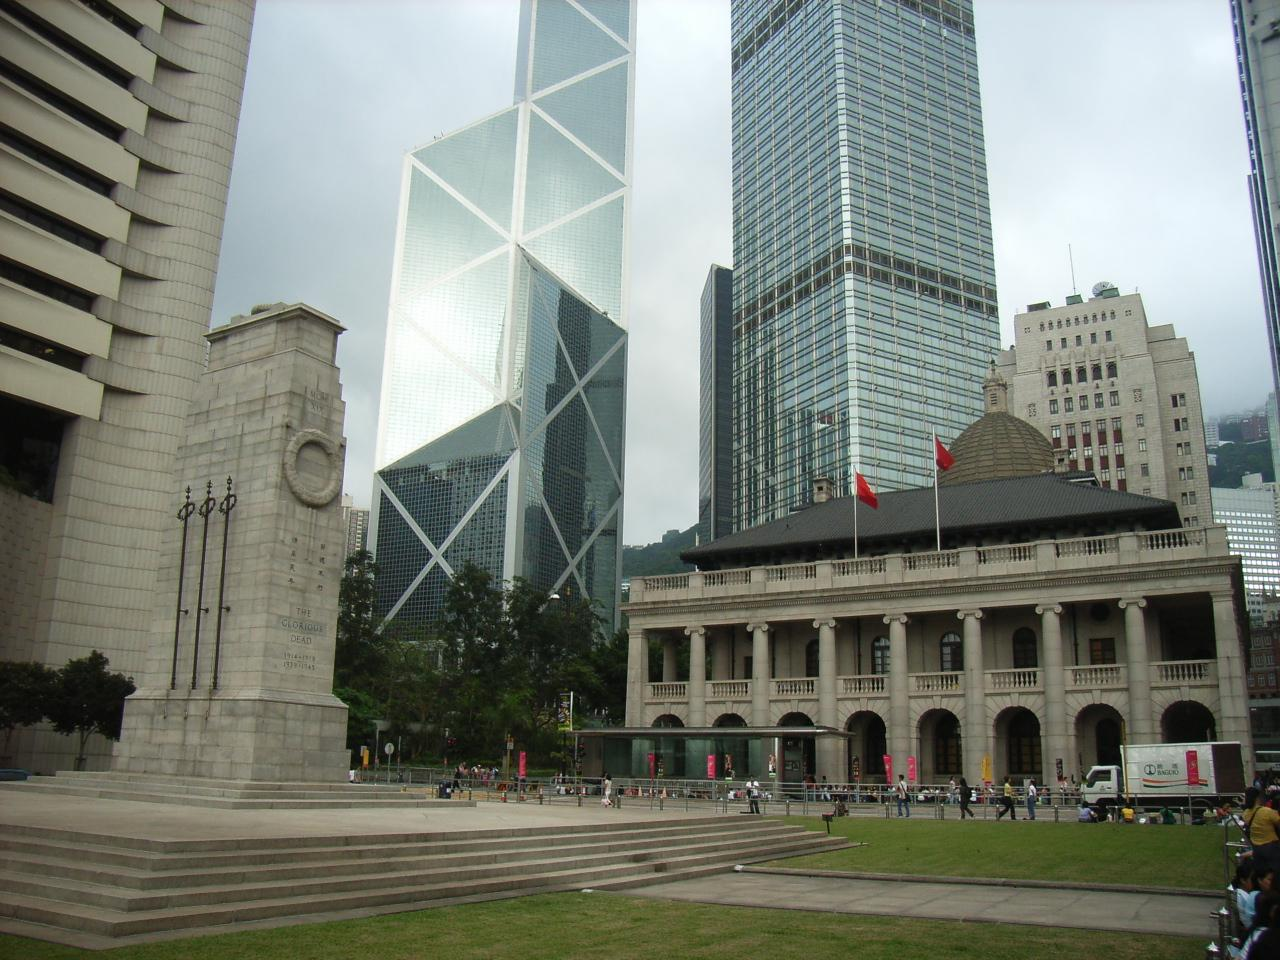 File:HK Chater Road Statue Square.jpg